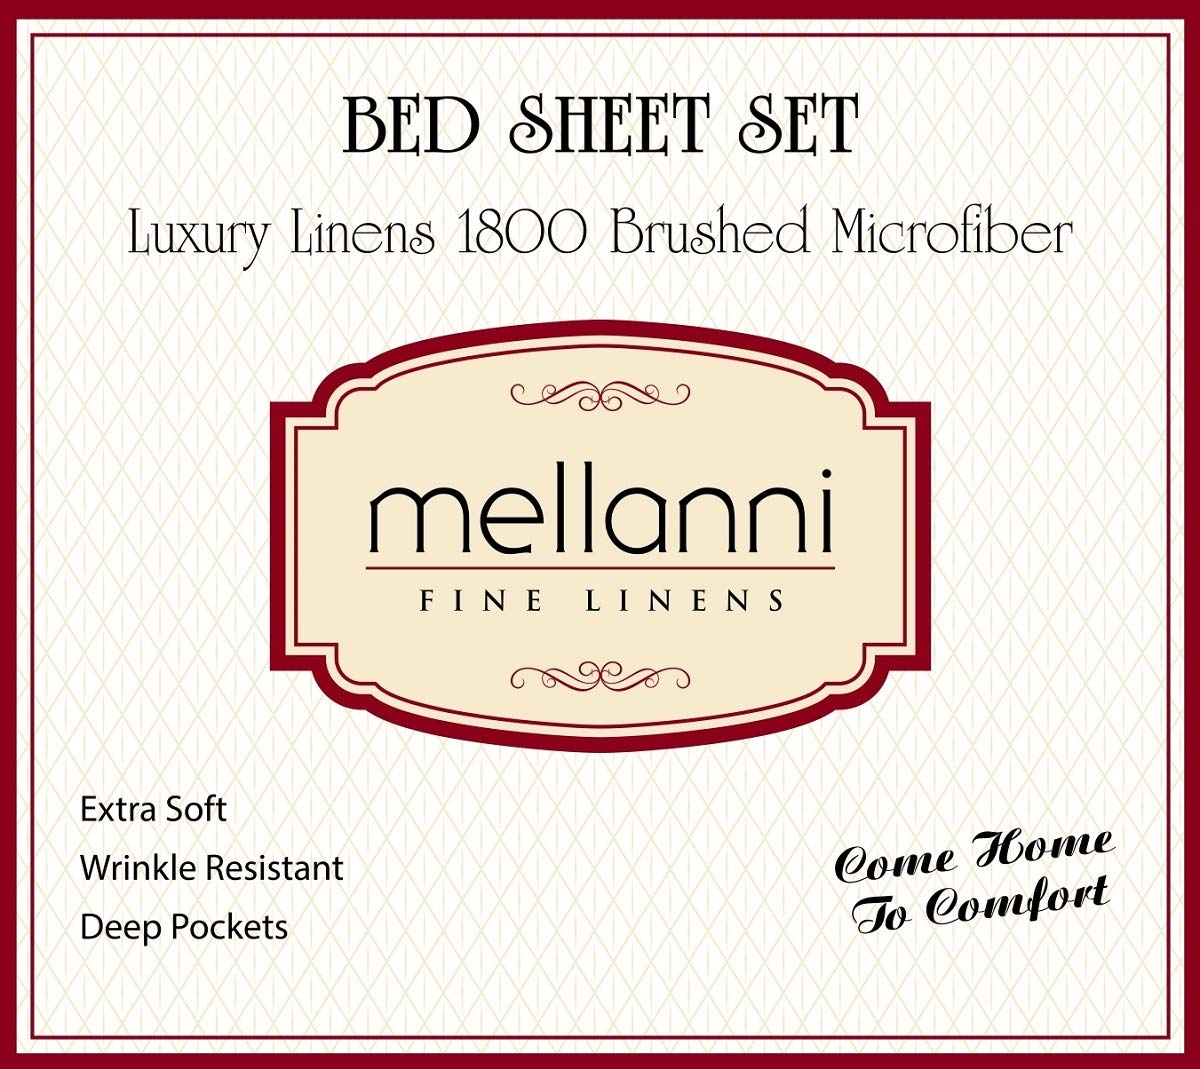 Mellanni Striped Bed Sheet Set - Brushed Microfiber 1800 Bedding - Wrinkle, Fade, Stain Resistant - Hypoallergenic - 4 Piece (Queen, Gray / Silver)